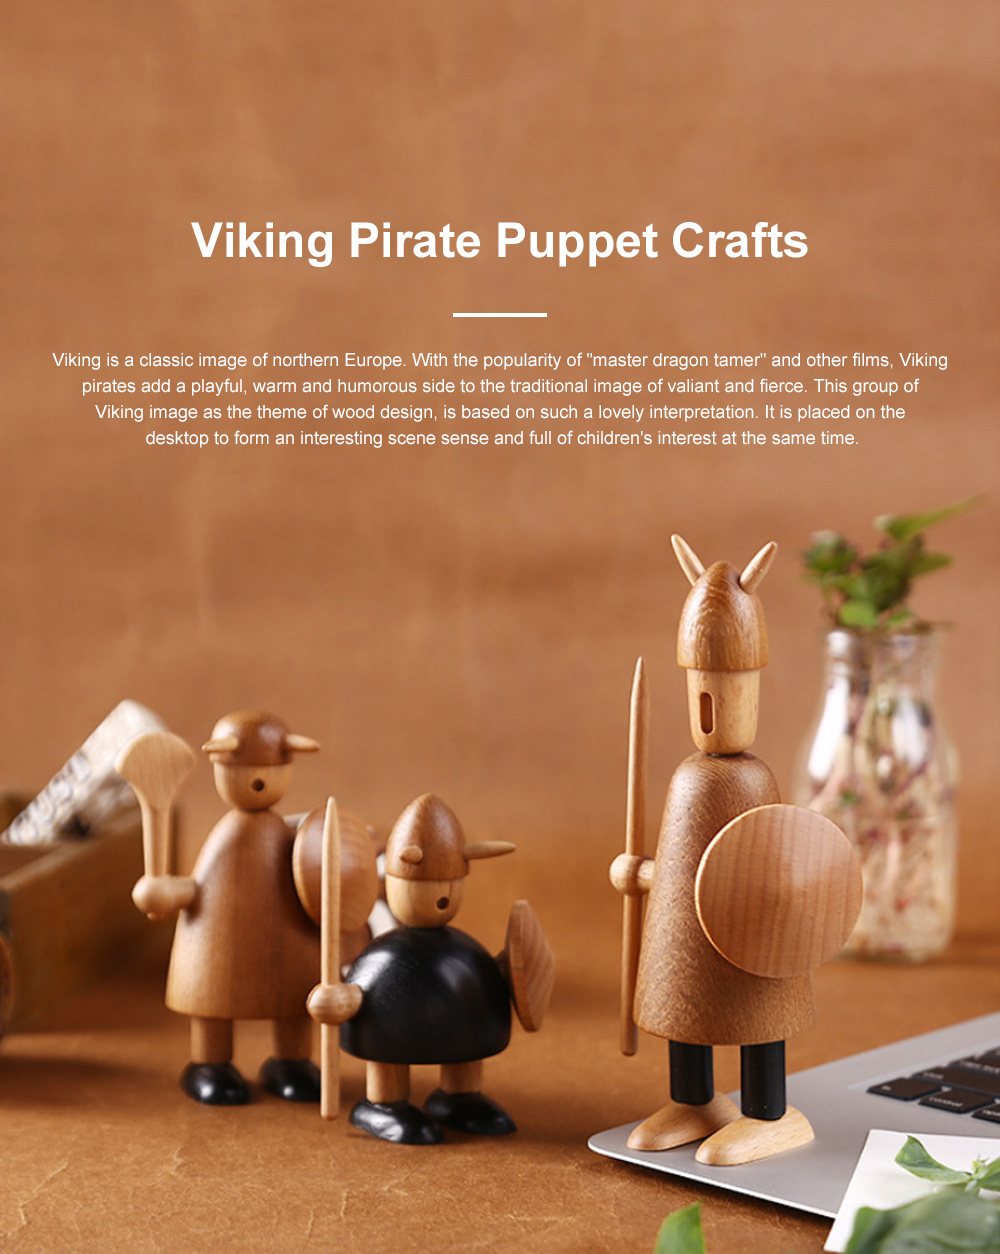 Viking Pirate Puppet Crafts Danish Creative Gifts Nordic Style Home Furnishings Decoration 0